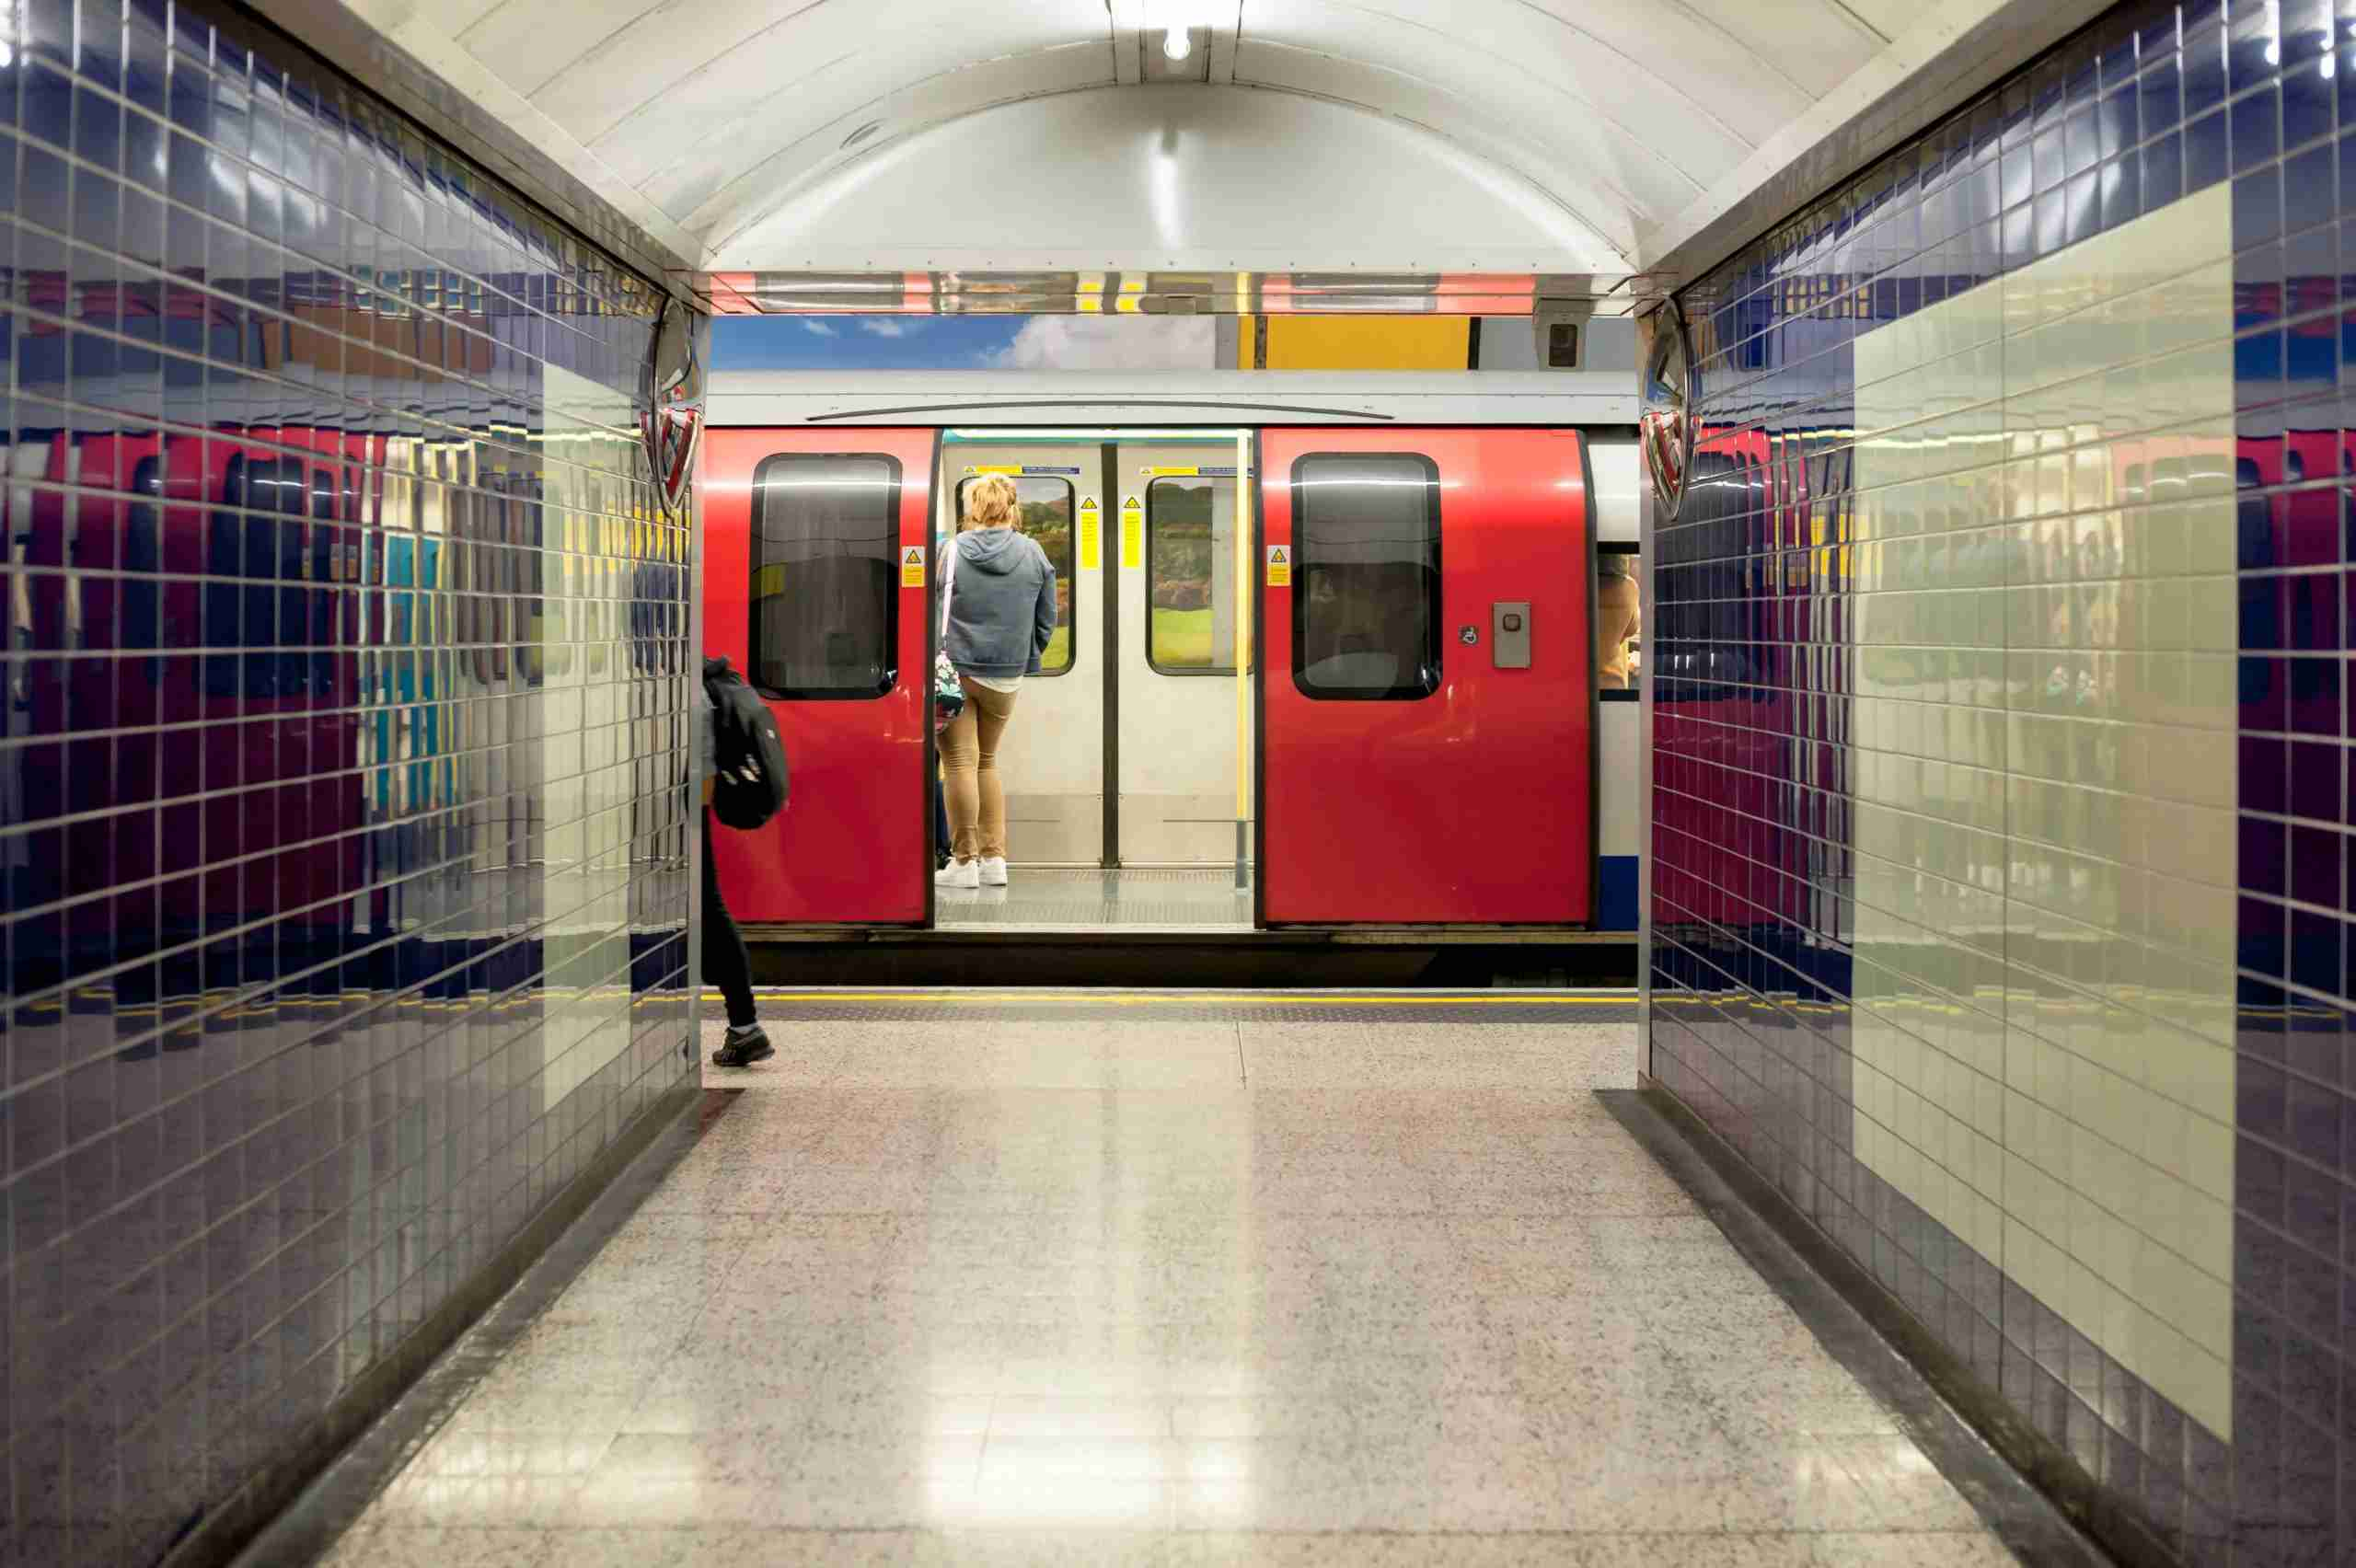 A tube train standing at the station with the door open, London, UK.